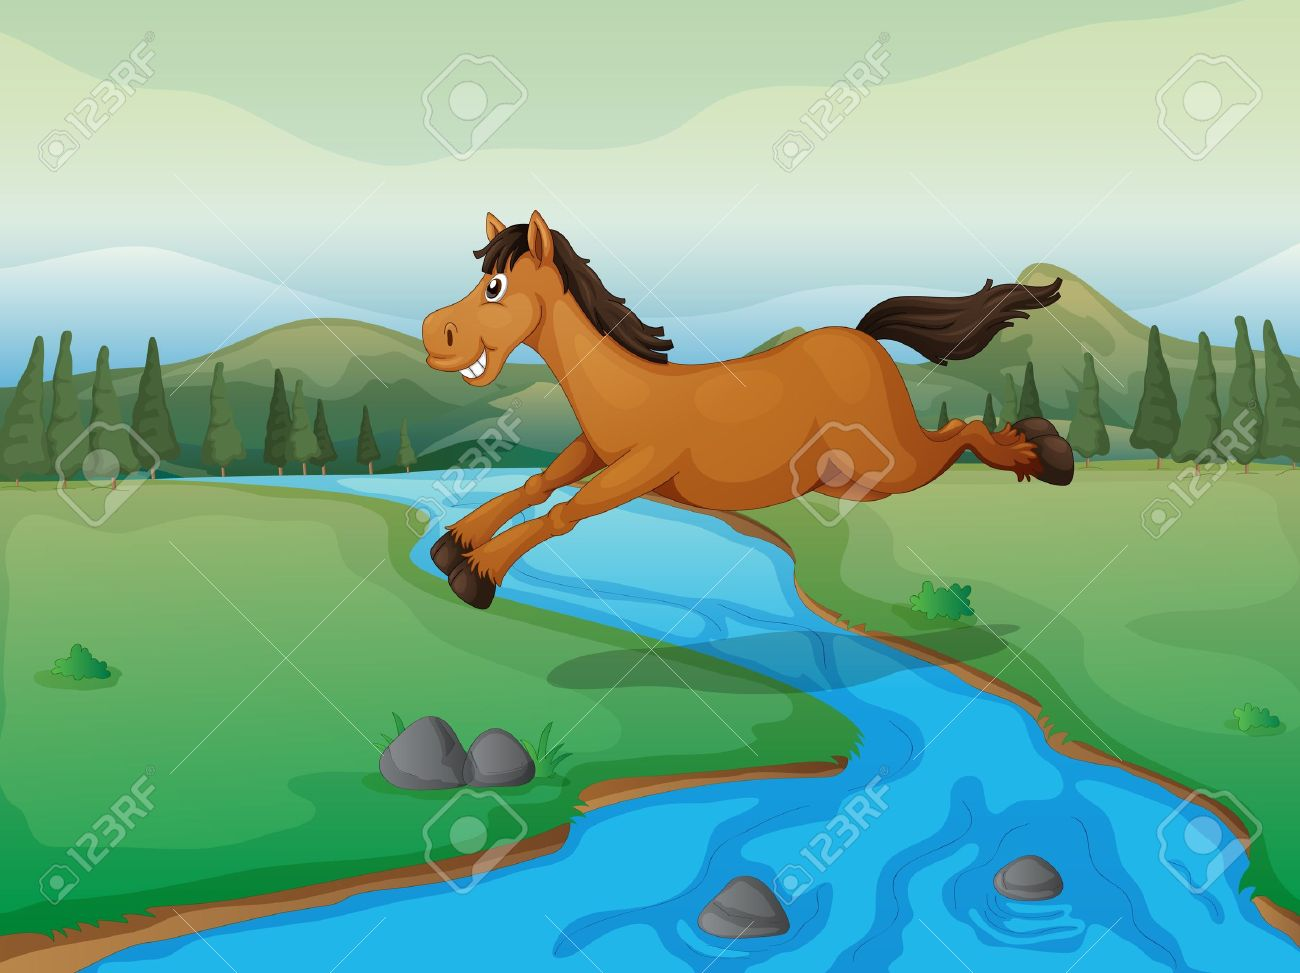 Illustration Of A Horse Crossing The River And A Mountain View.